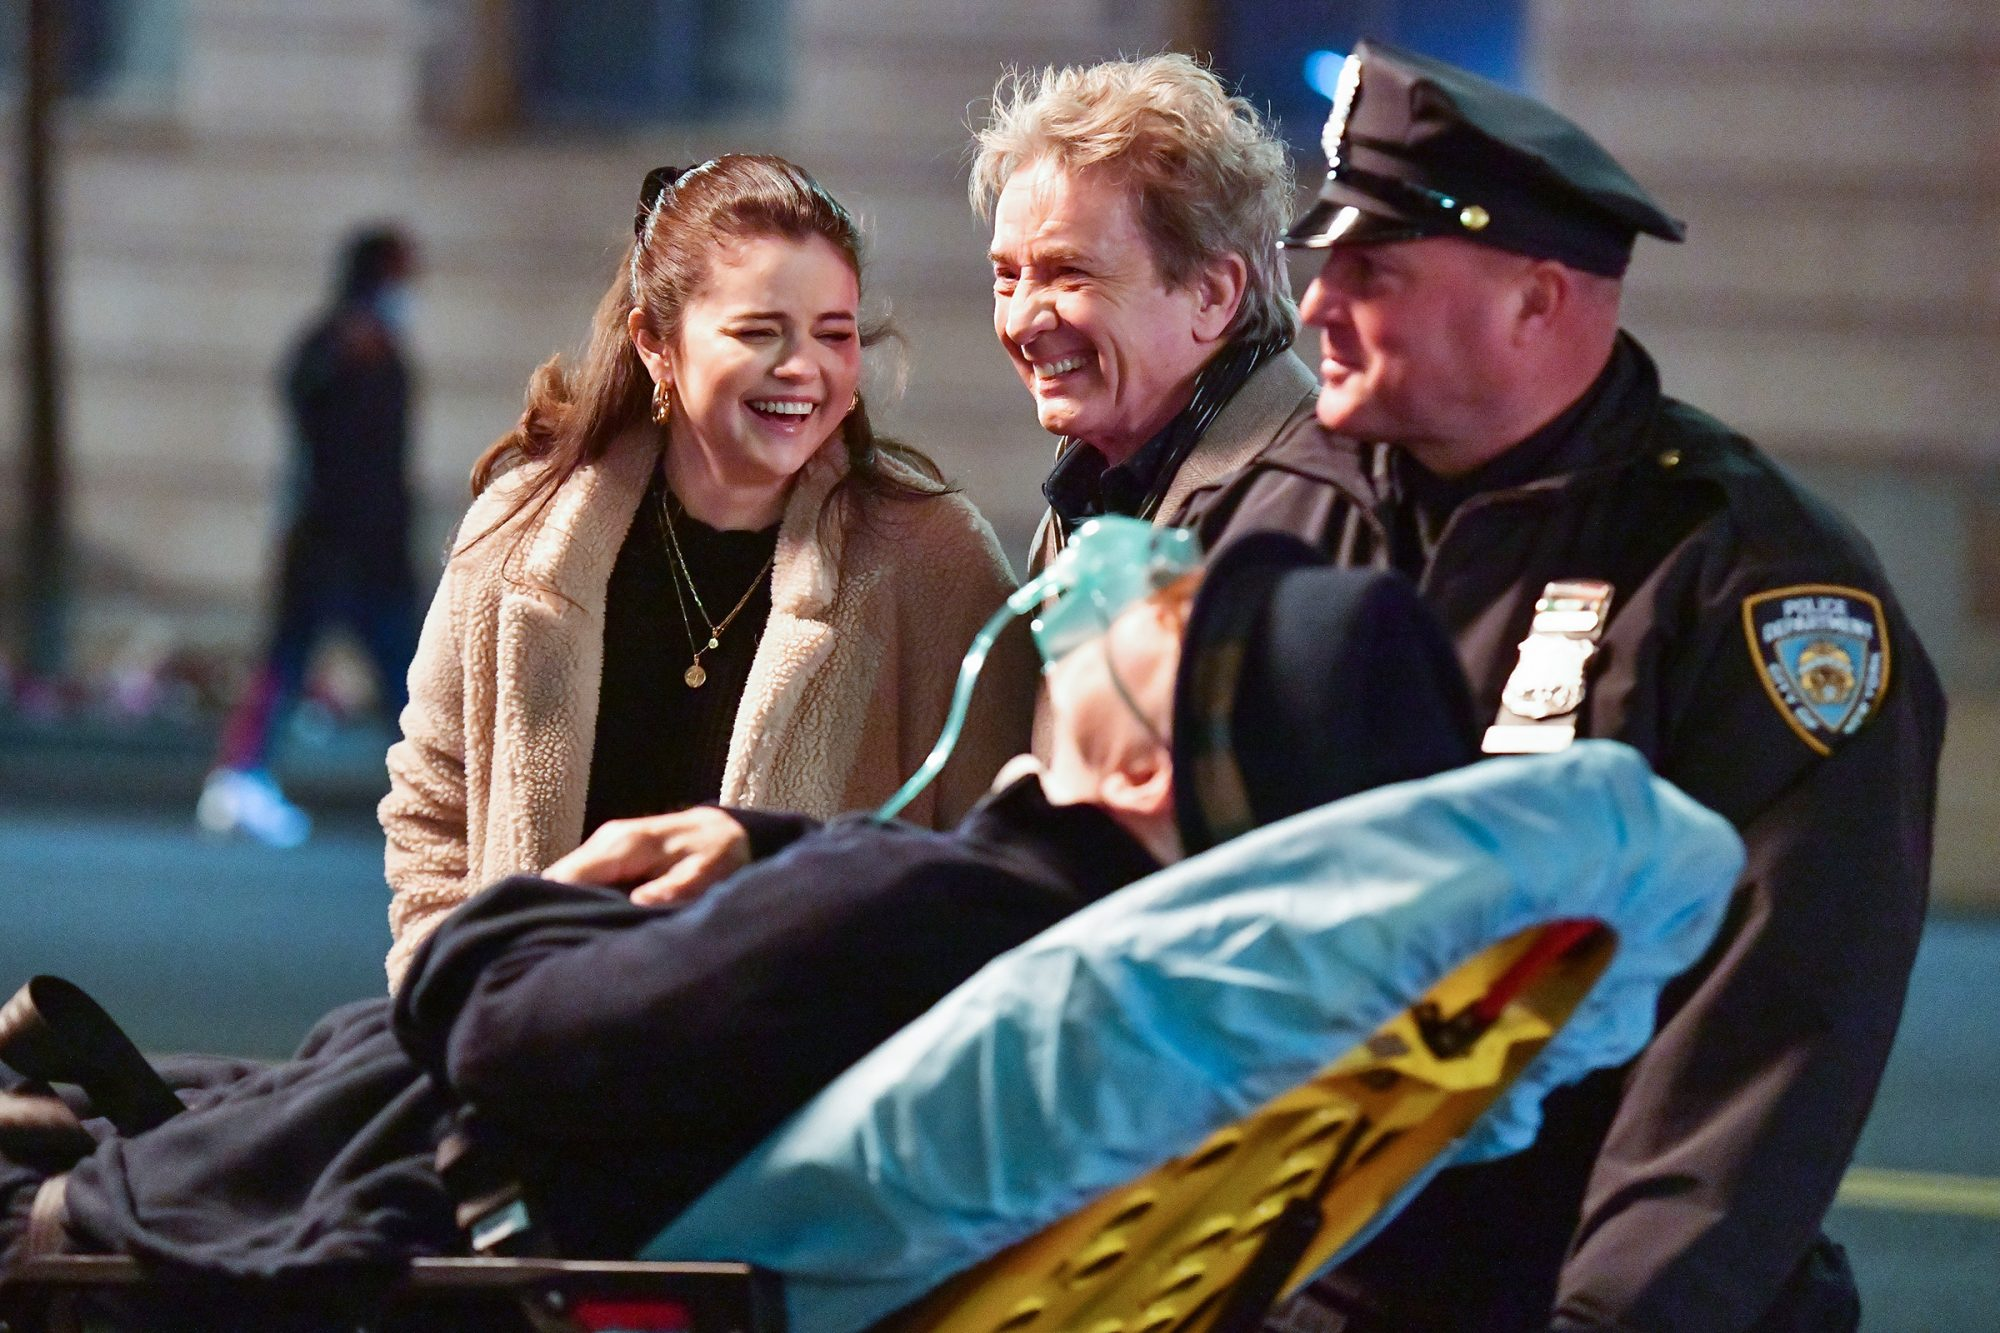 Selena Gomez, Martin Short and Steve Martin seen on the set of 'Only Murders in the Building' in Manhattan on March 30, 2021 in New York City